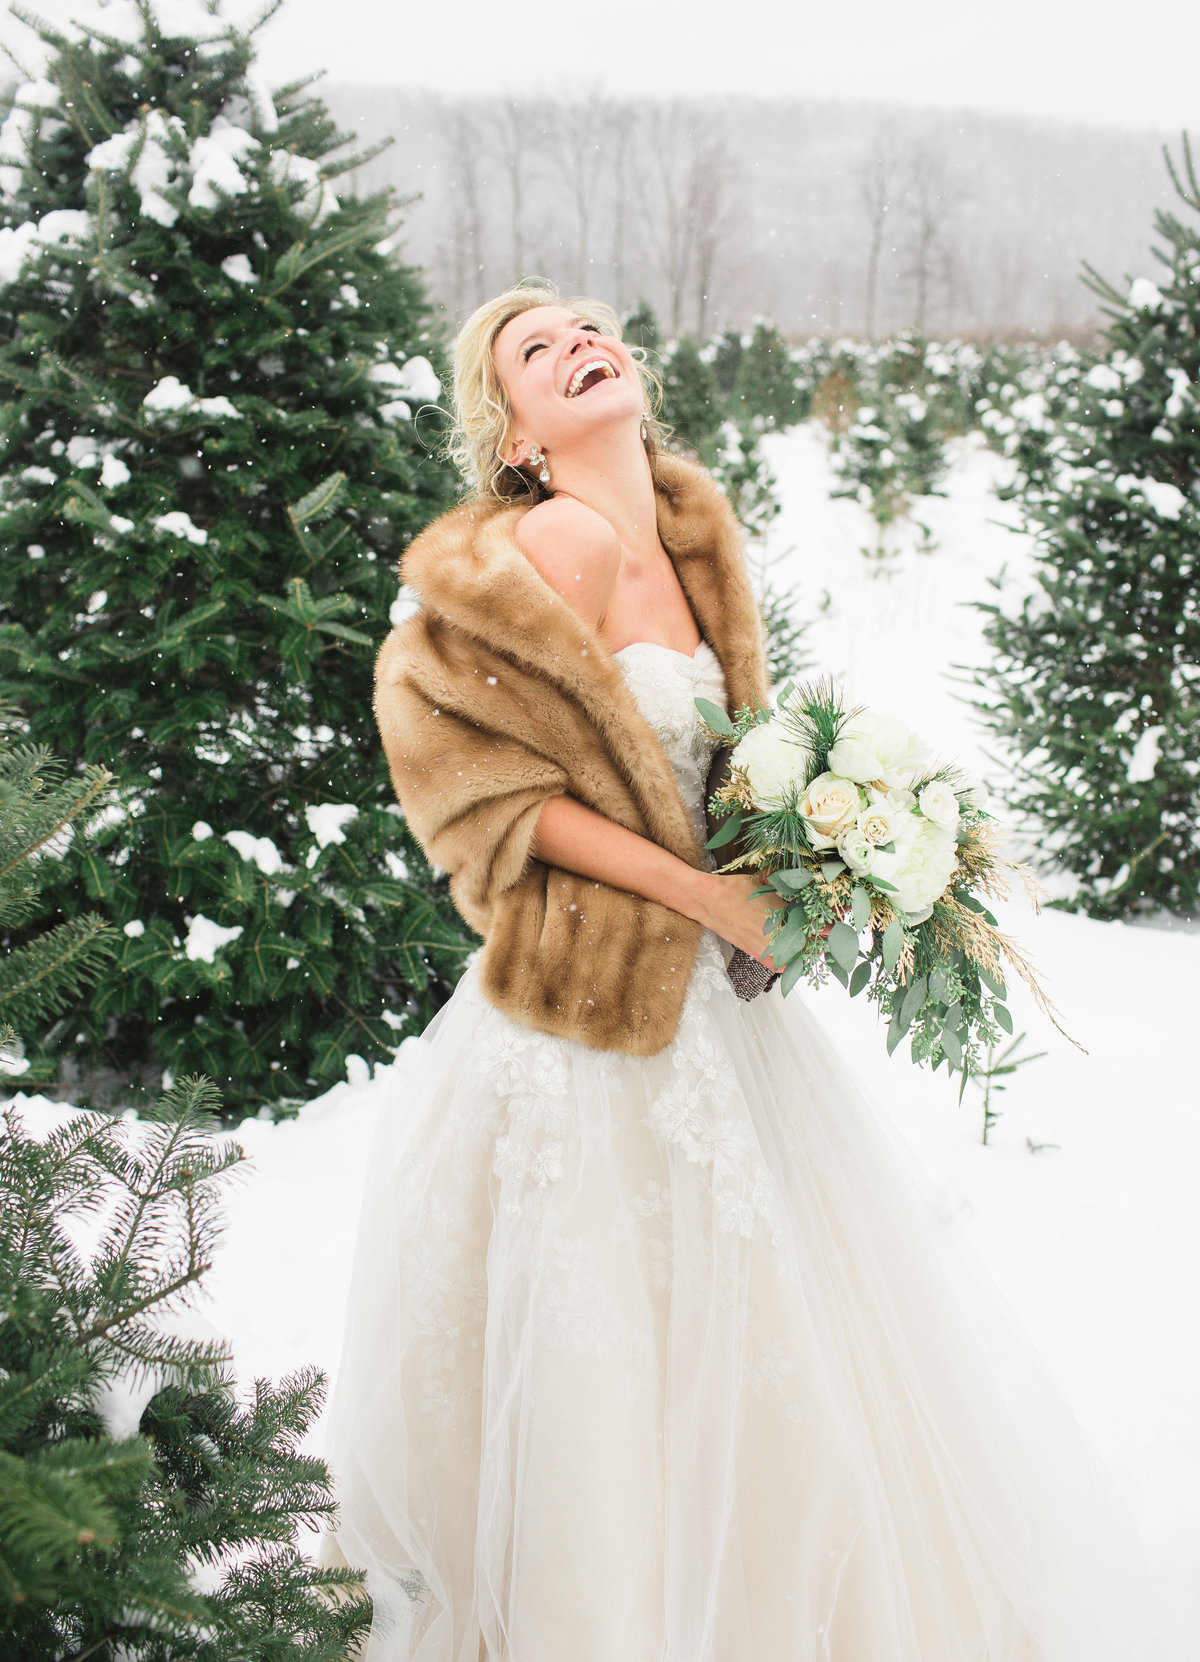 SnowyWedding-LaurenFairPhotography-MS01-24